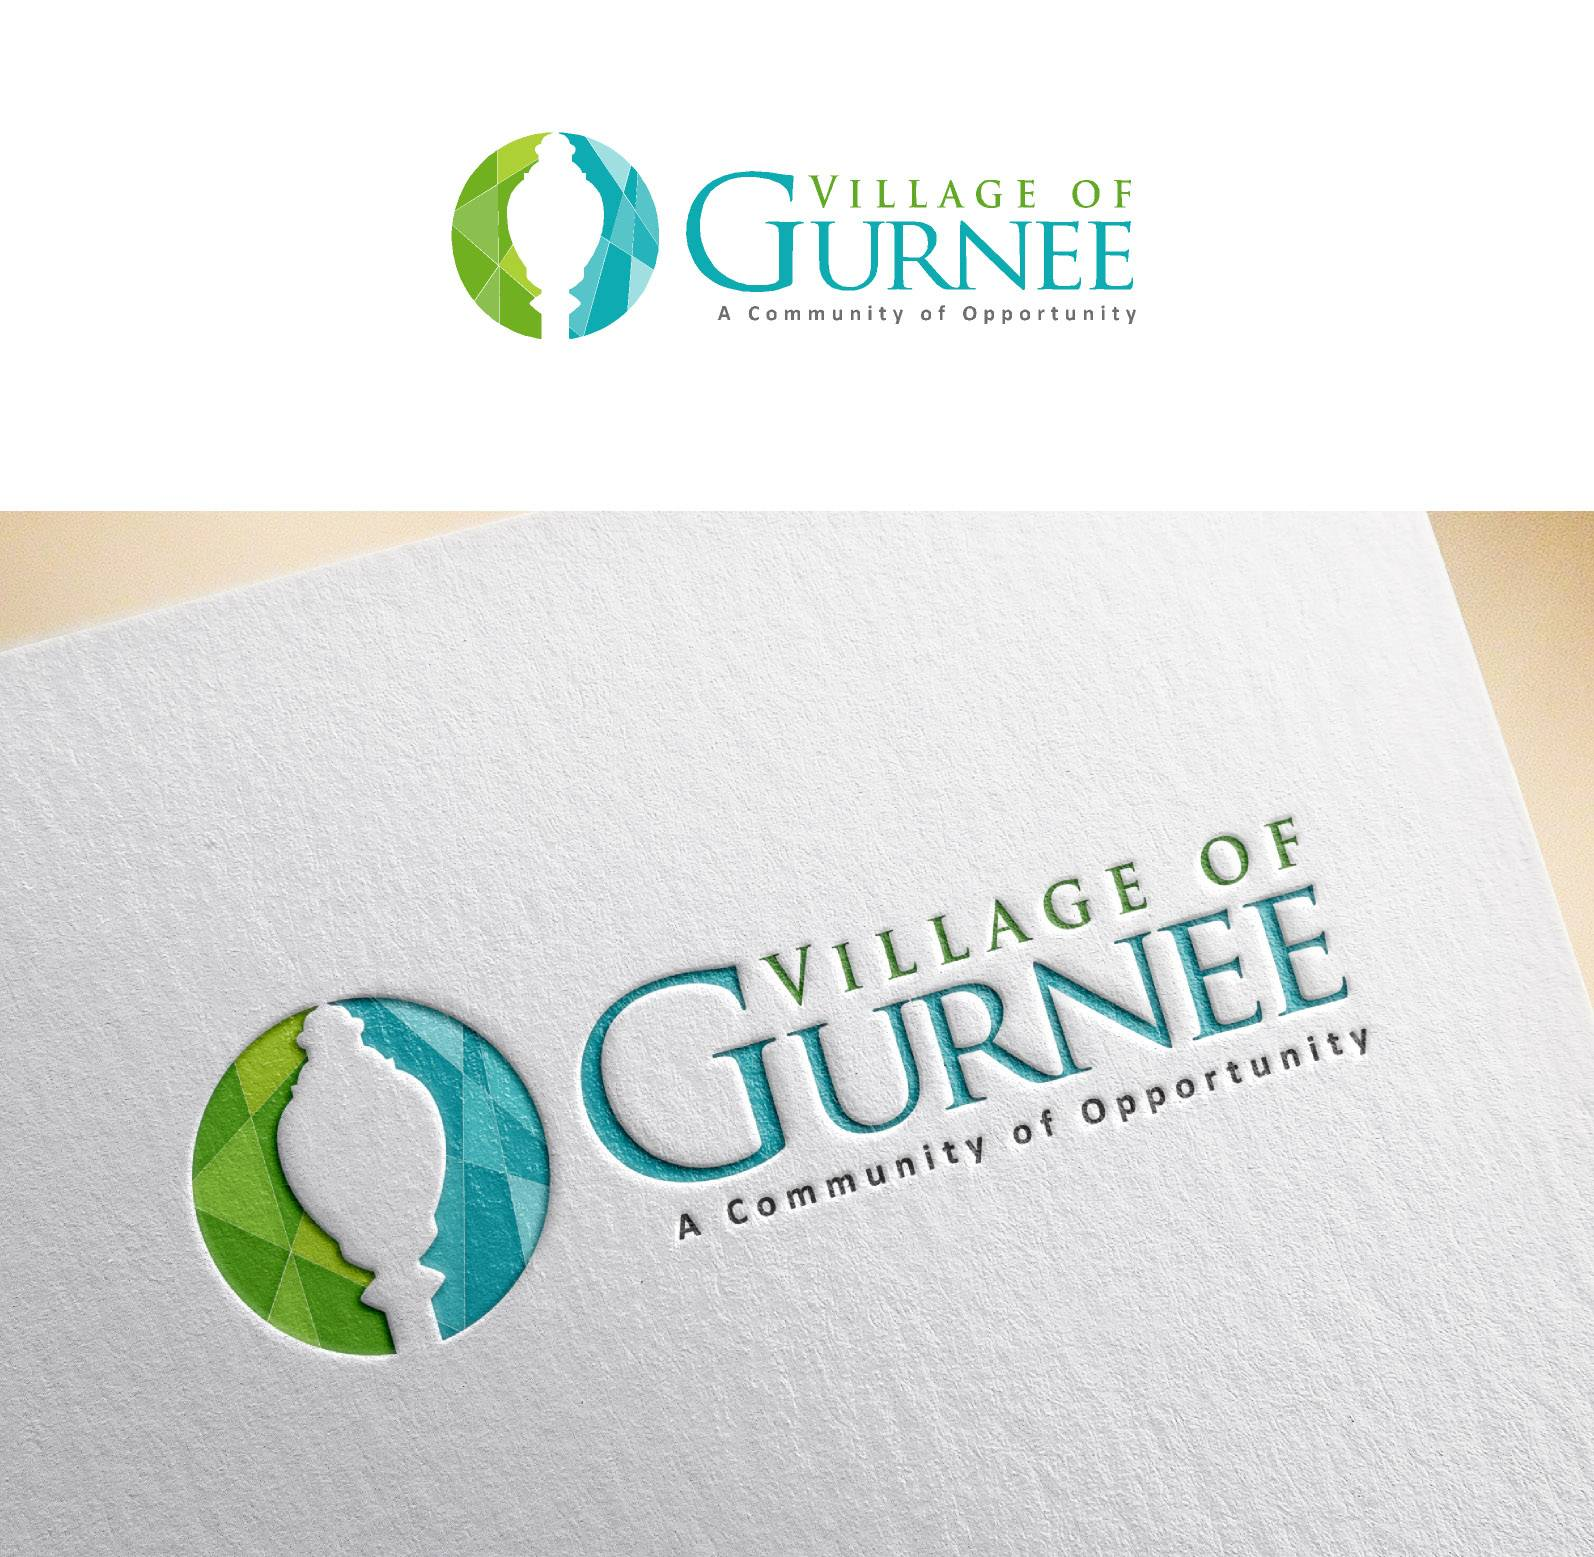 Here is one of the crowdsourcing designs for the village of Gurnee's new logo that was not selected.